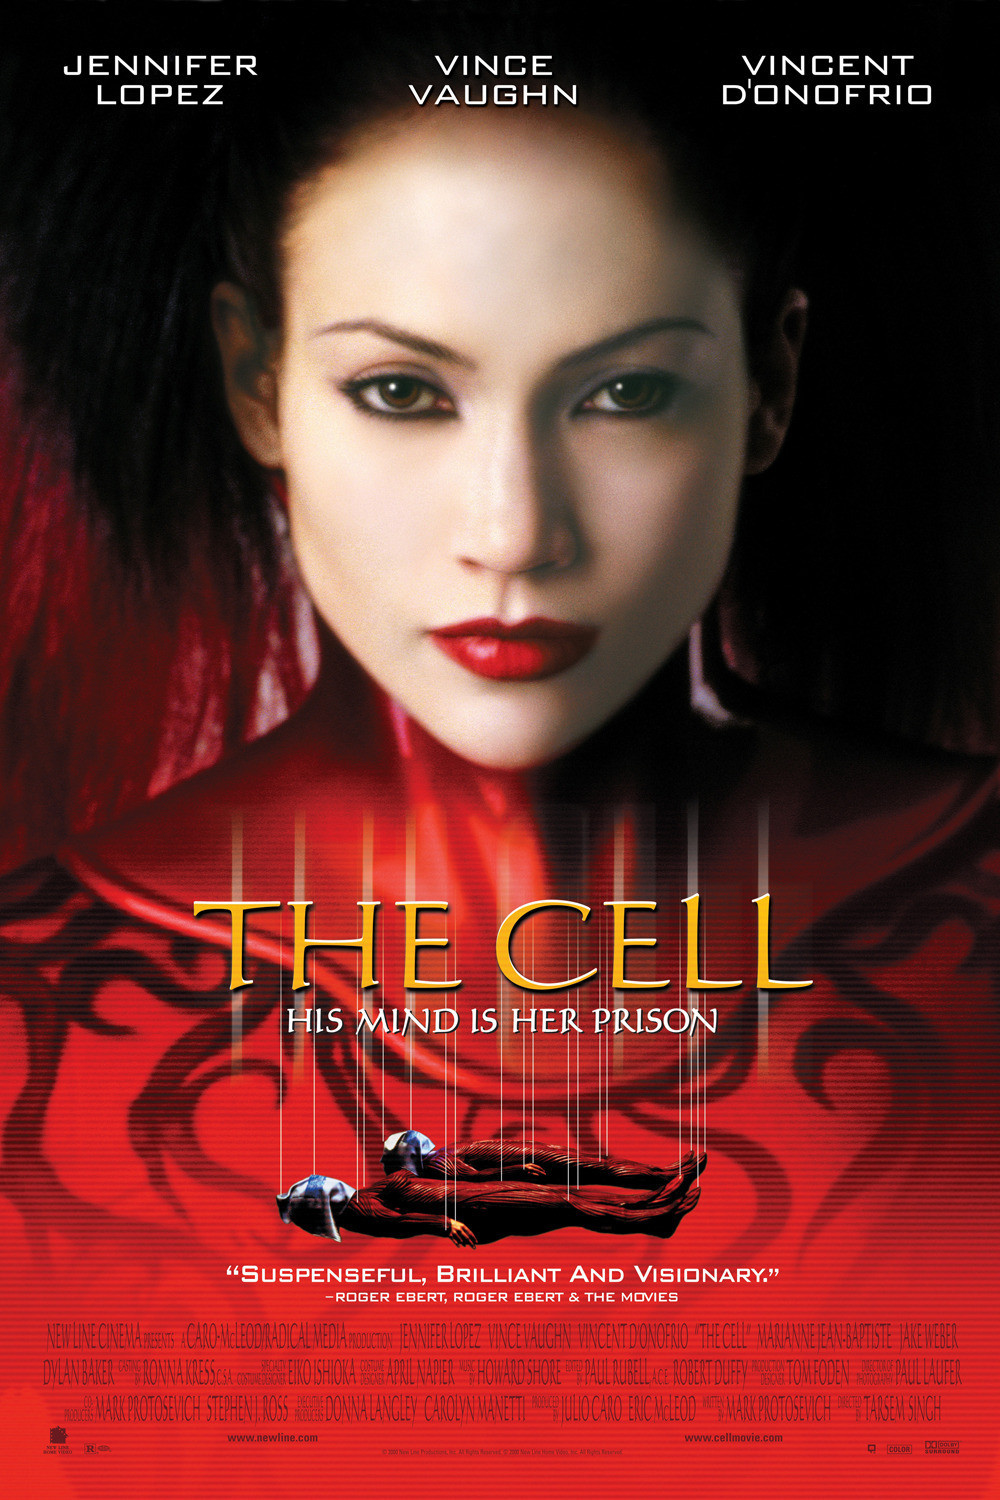 The Cell - 2000 (Feature) – 1h 49mThe Cell is an American science-fiction/horror film directed by Tarsem Singh in his directorial debut, and starring Jennifer Lopez, Vince Vaughn, and Vincent D'Onofrio.Roger Ebert awarded the film four stars out of four, writing: